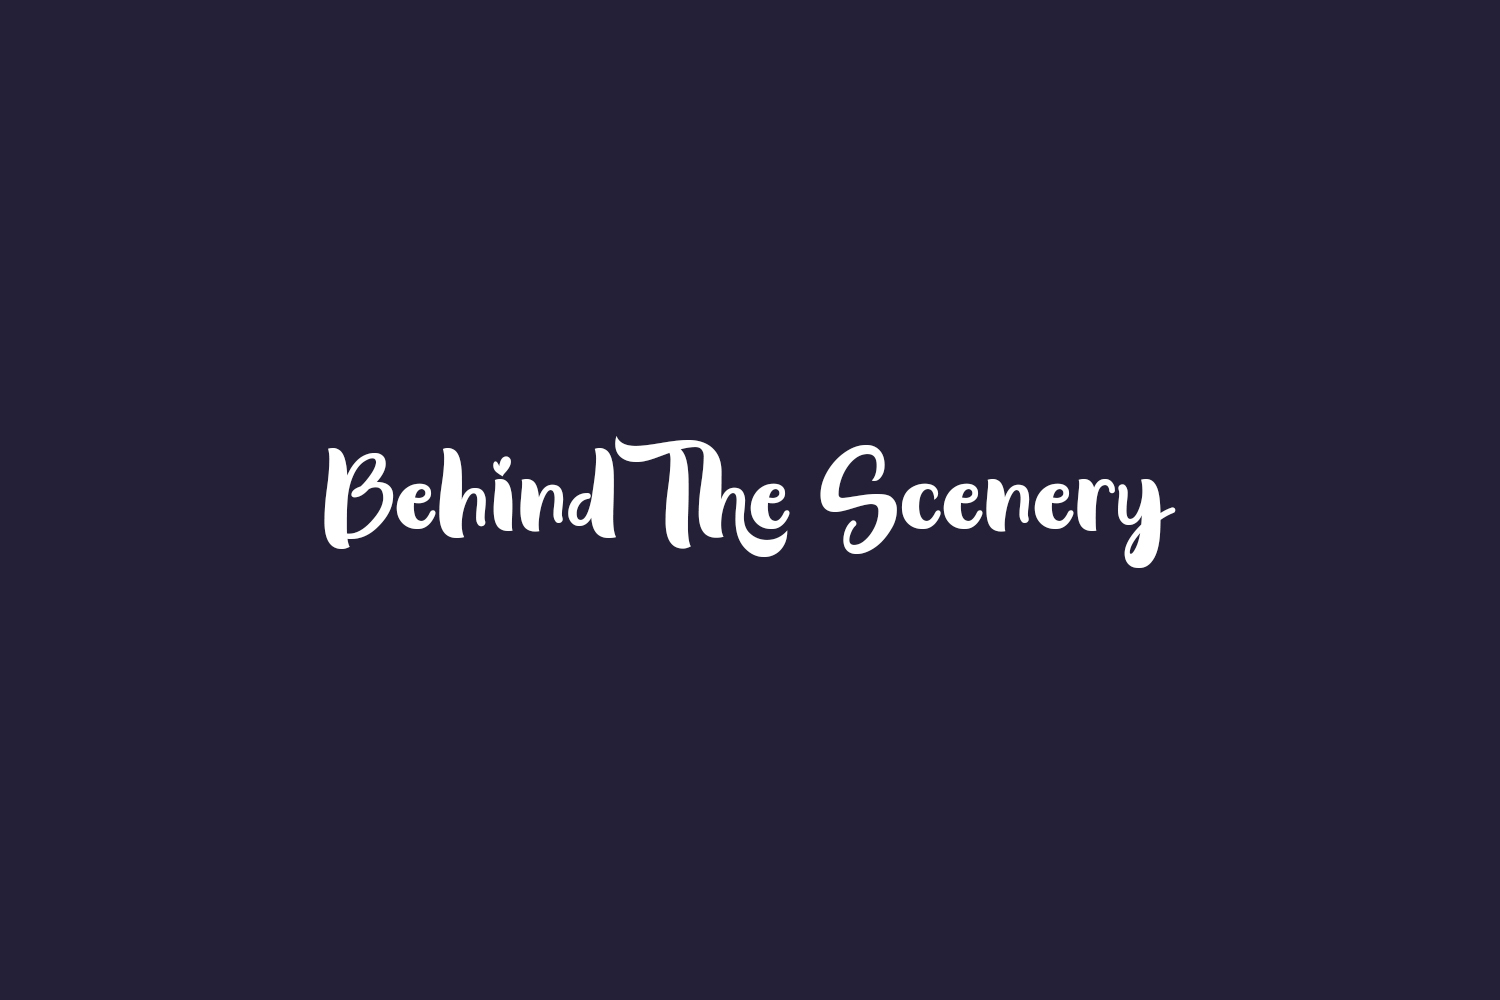 Behind The Scenery Free Font